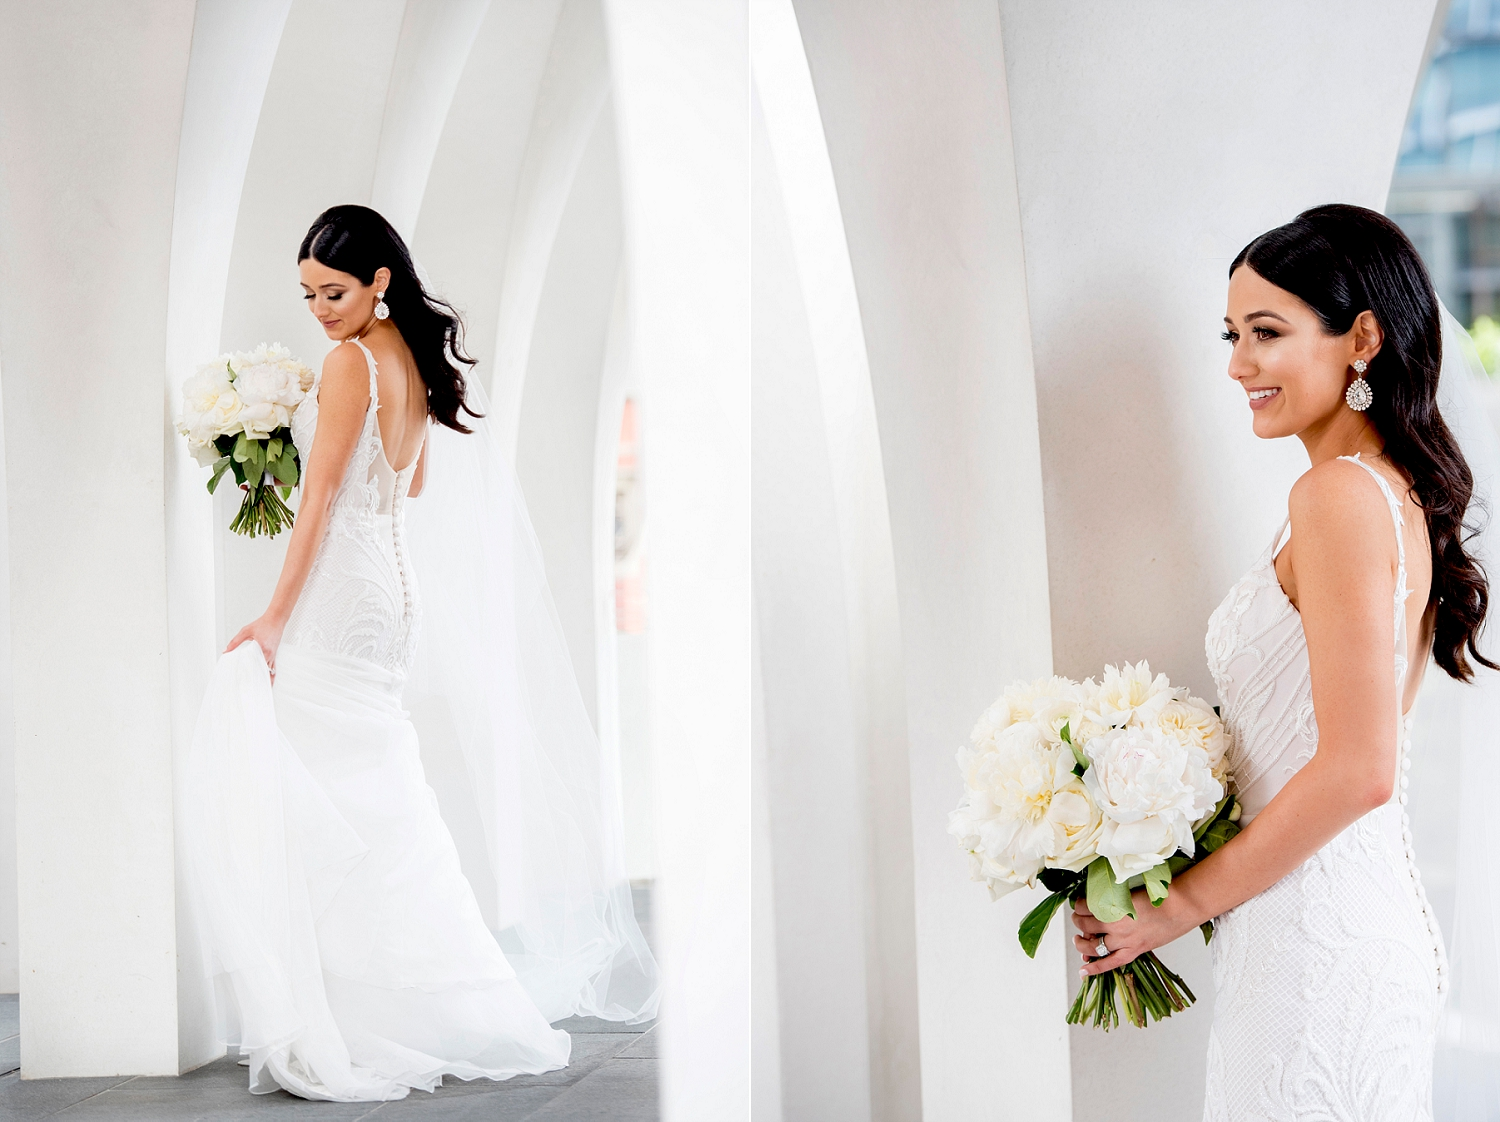 46_st georges cathedral wedding arches perth.jpg